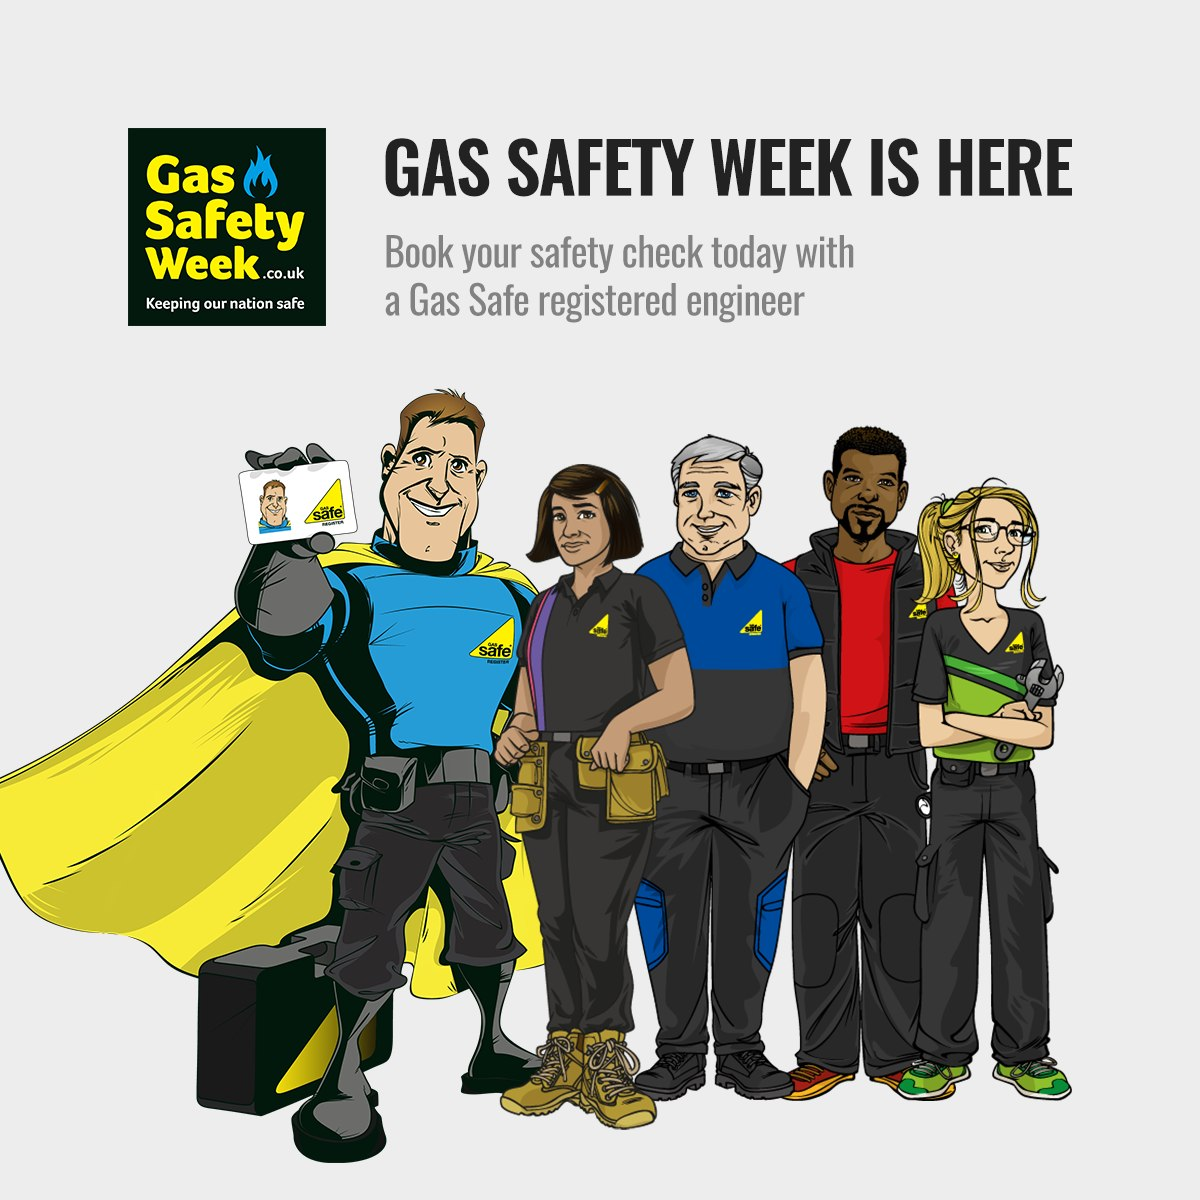 Gas safety week flyer